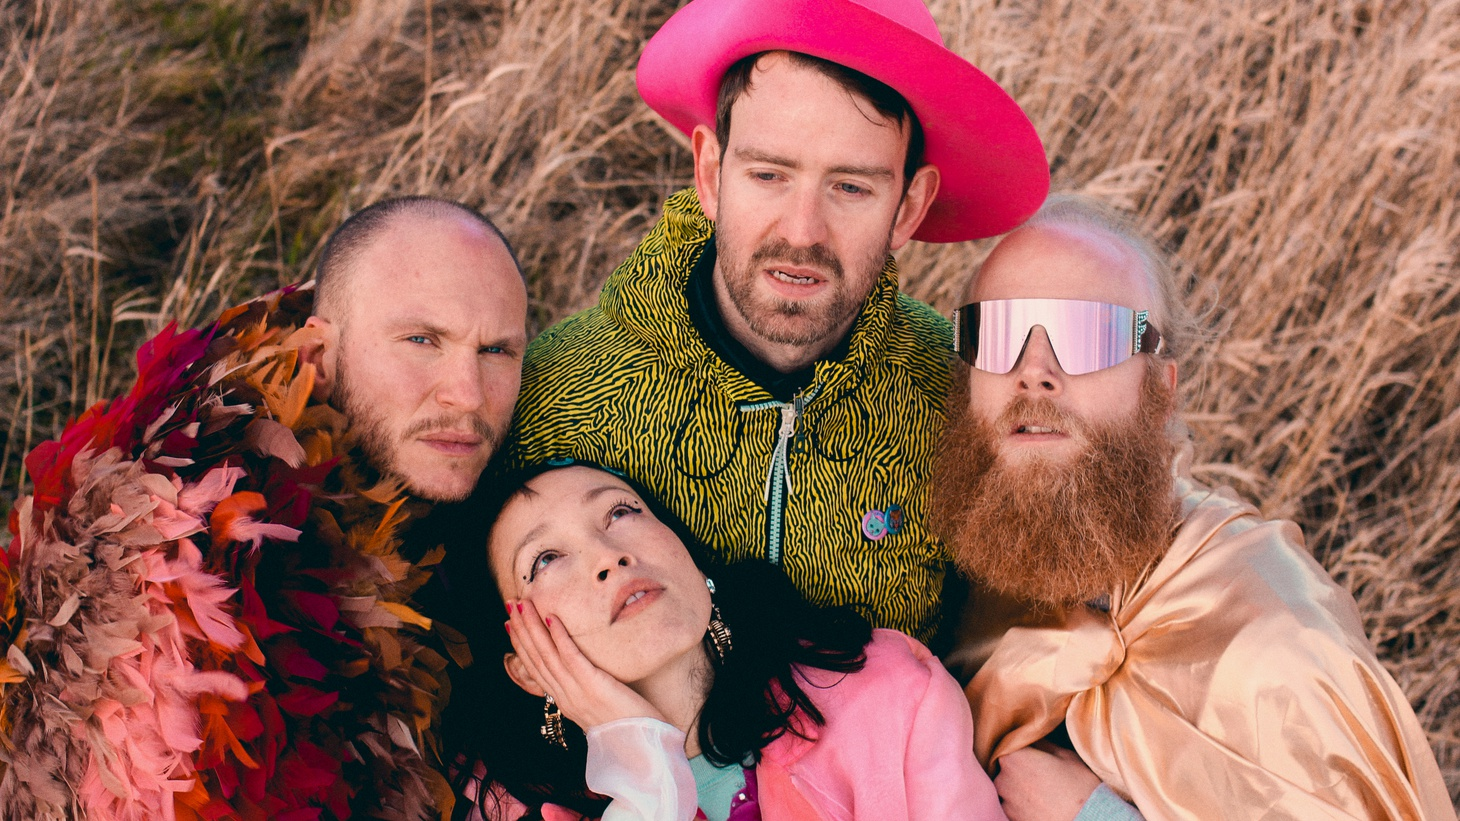 """If you are a fan of Little Dragon's """"New Me, Same Us,"""" go soak in their new remix EP to listen to fresh treatments of songs from Georgia Anne Muldrow, FKJ, Ela Minus, and Pote's version of """"Hold On."""""""